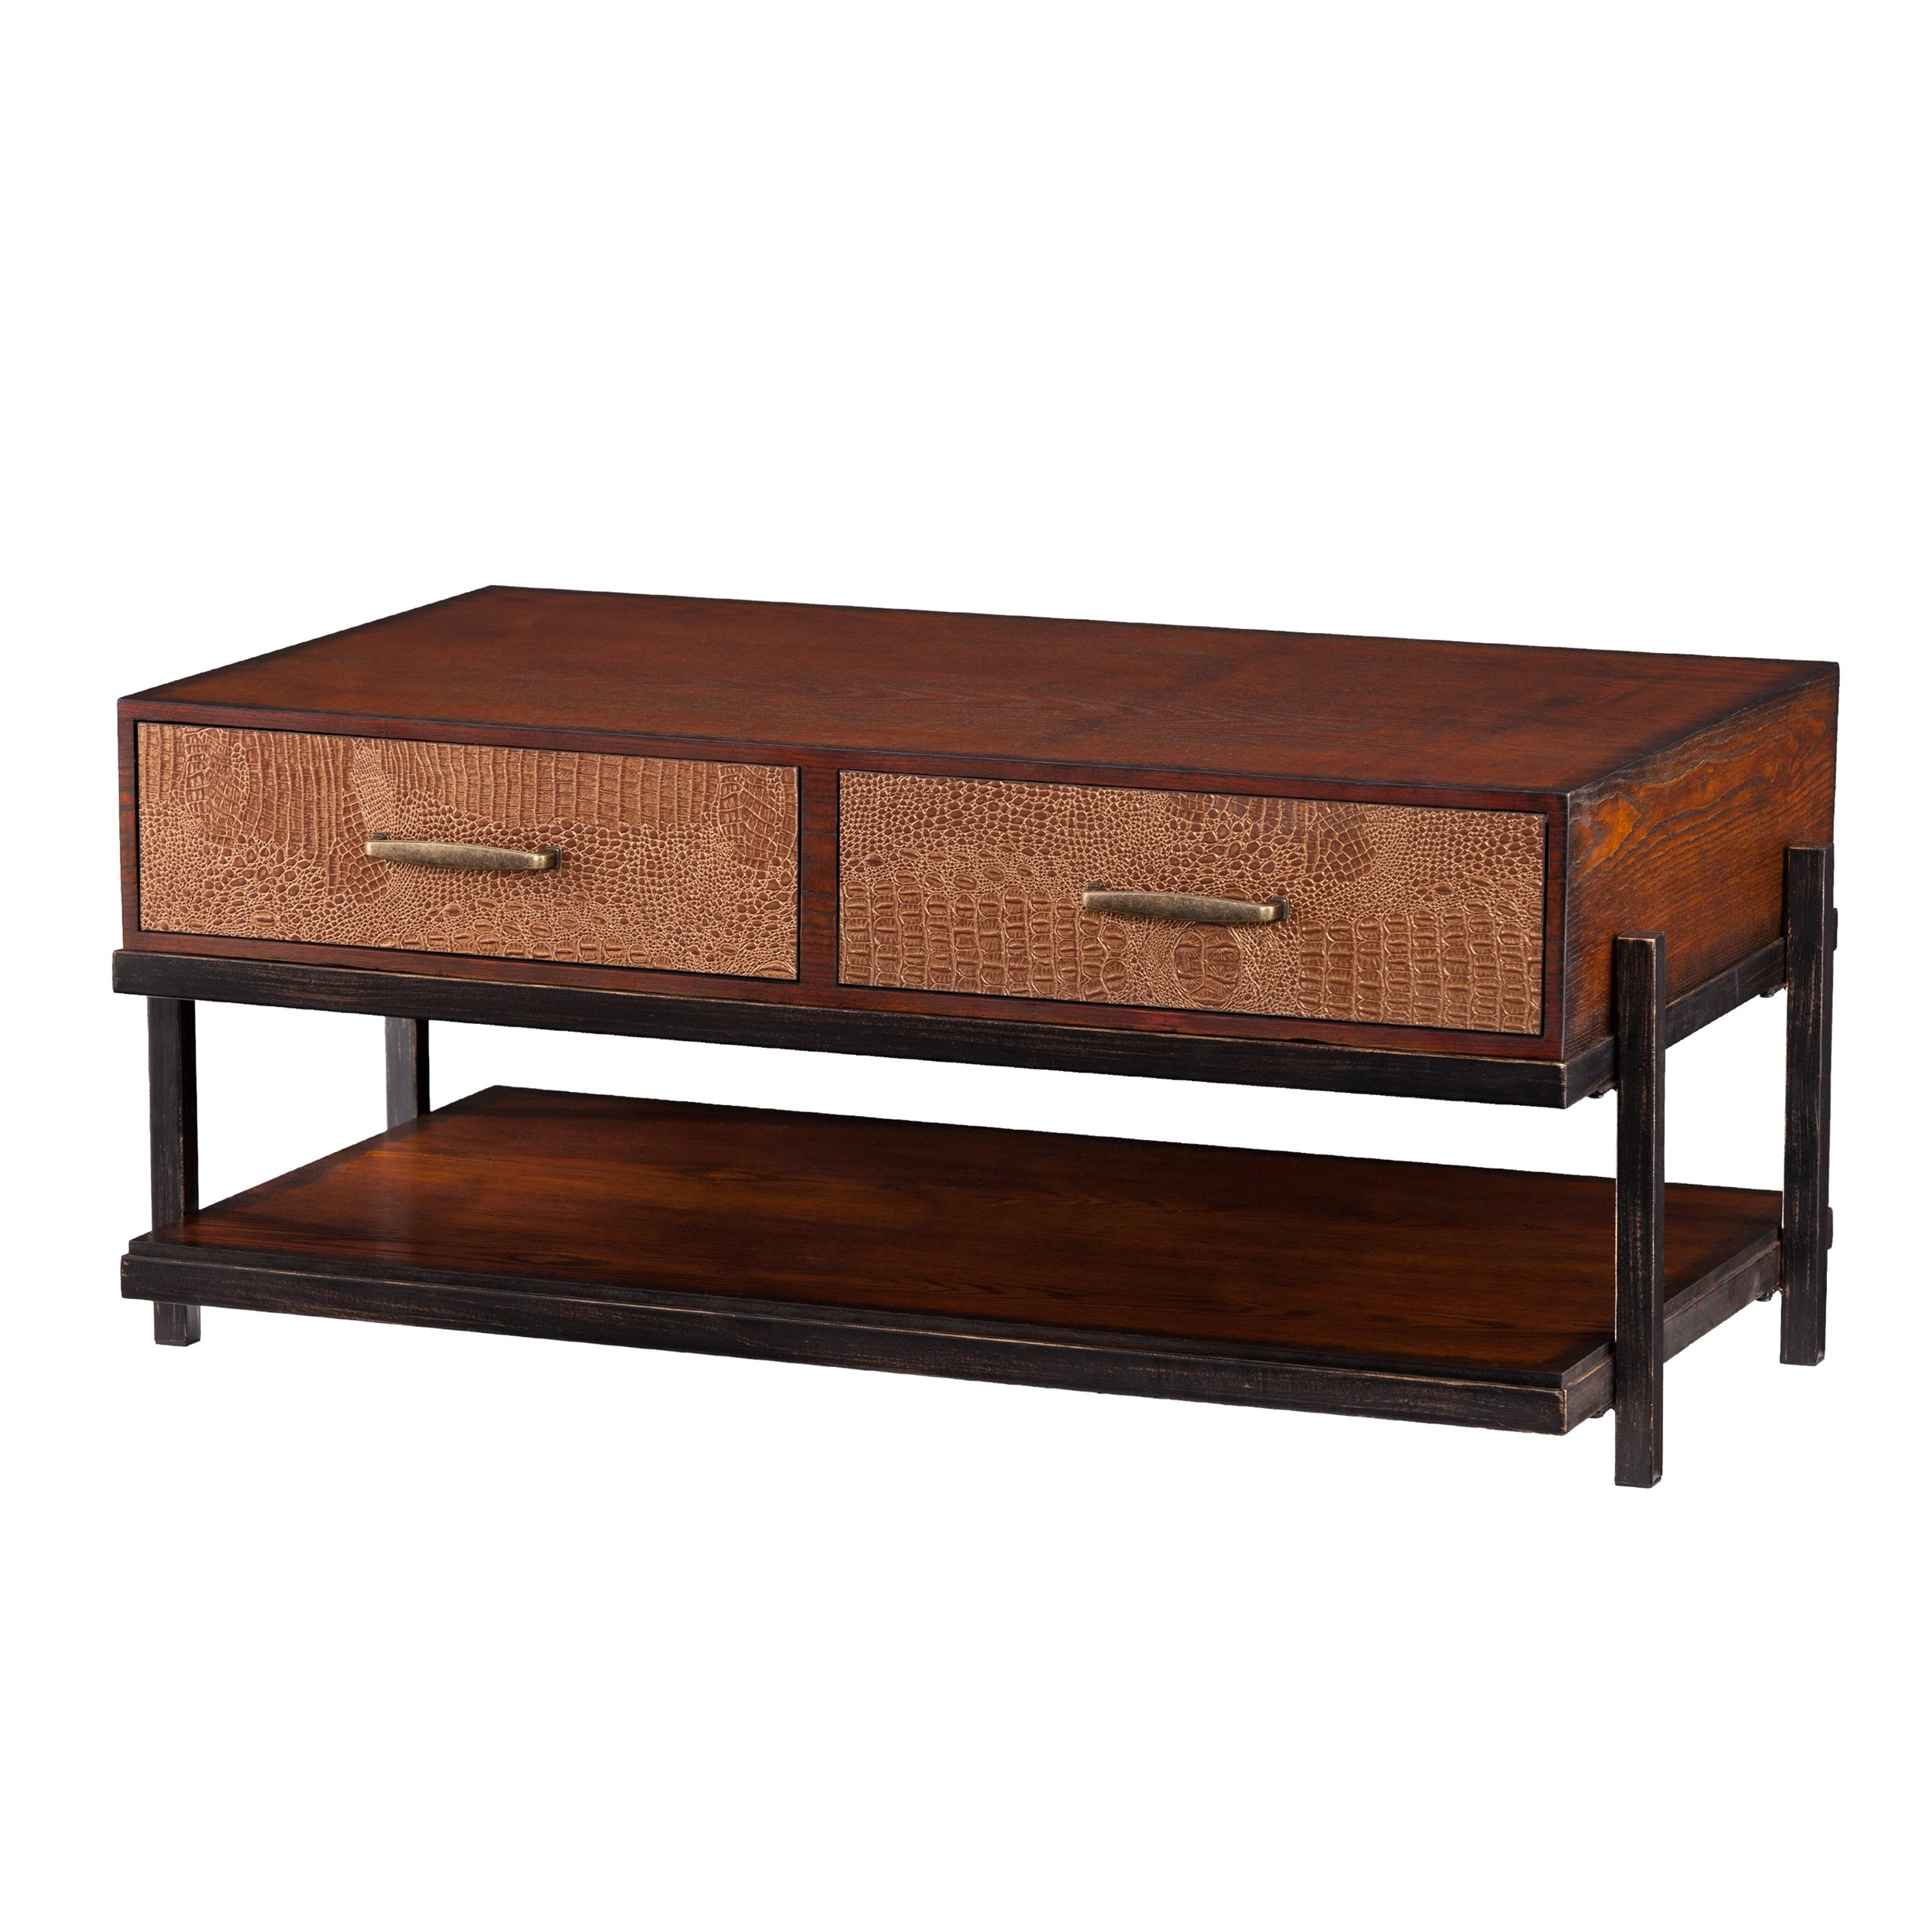 Widely Used Palmer Storage Cocktail Tables For Shop Harper Blvd Palmer Cocktail/ Coffee Table – Free Shipping Today (View 9 of 20)